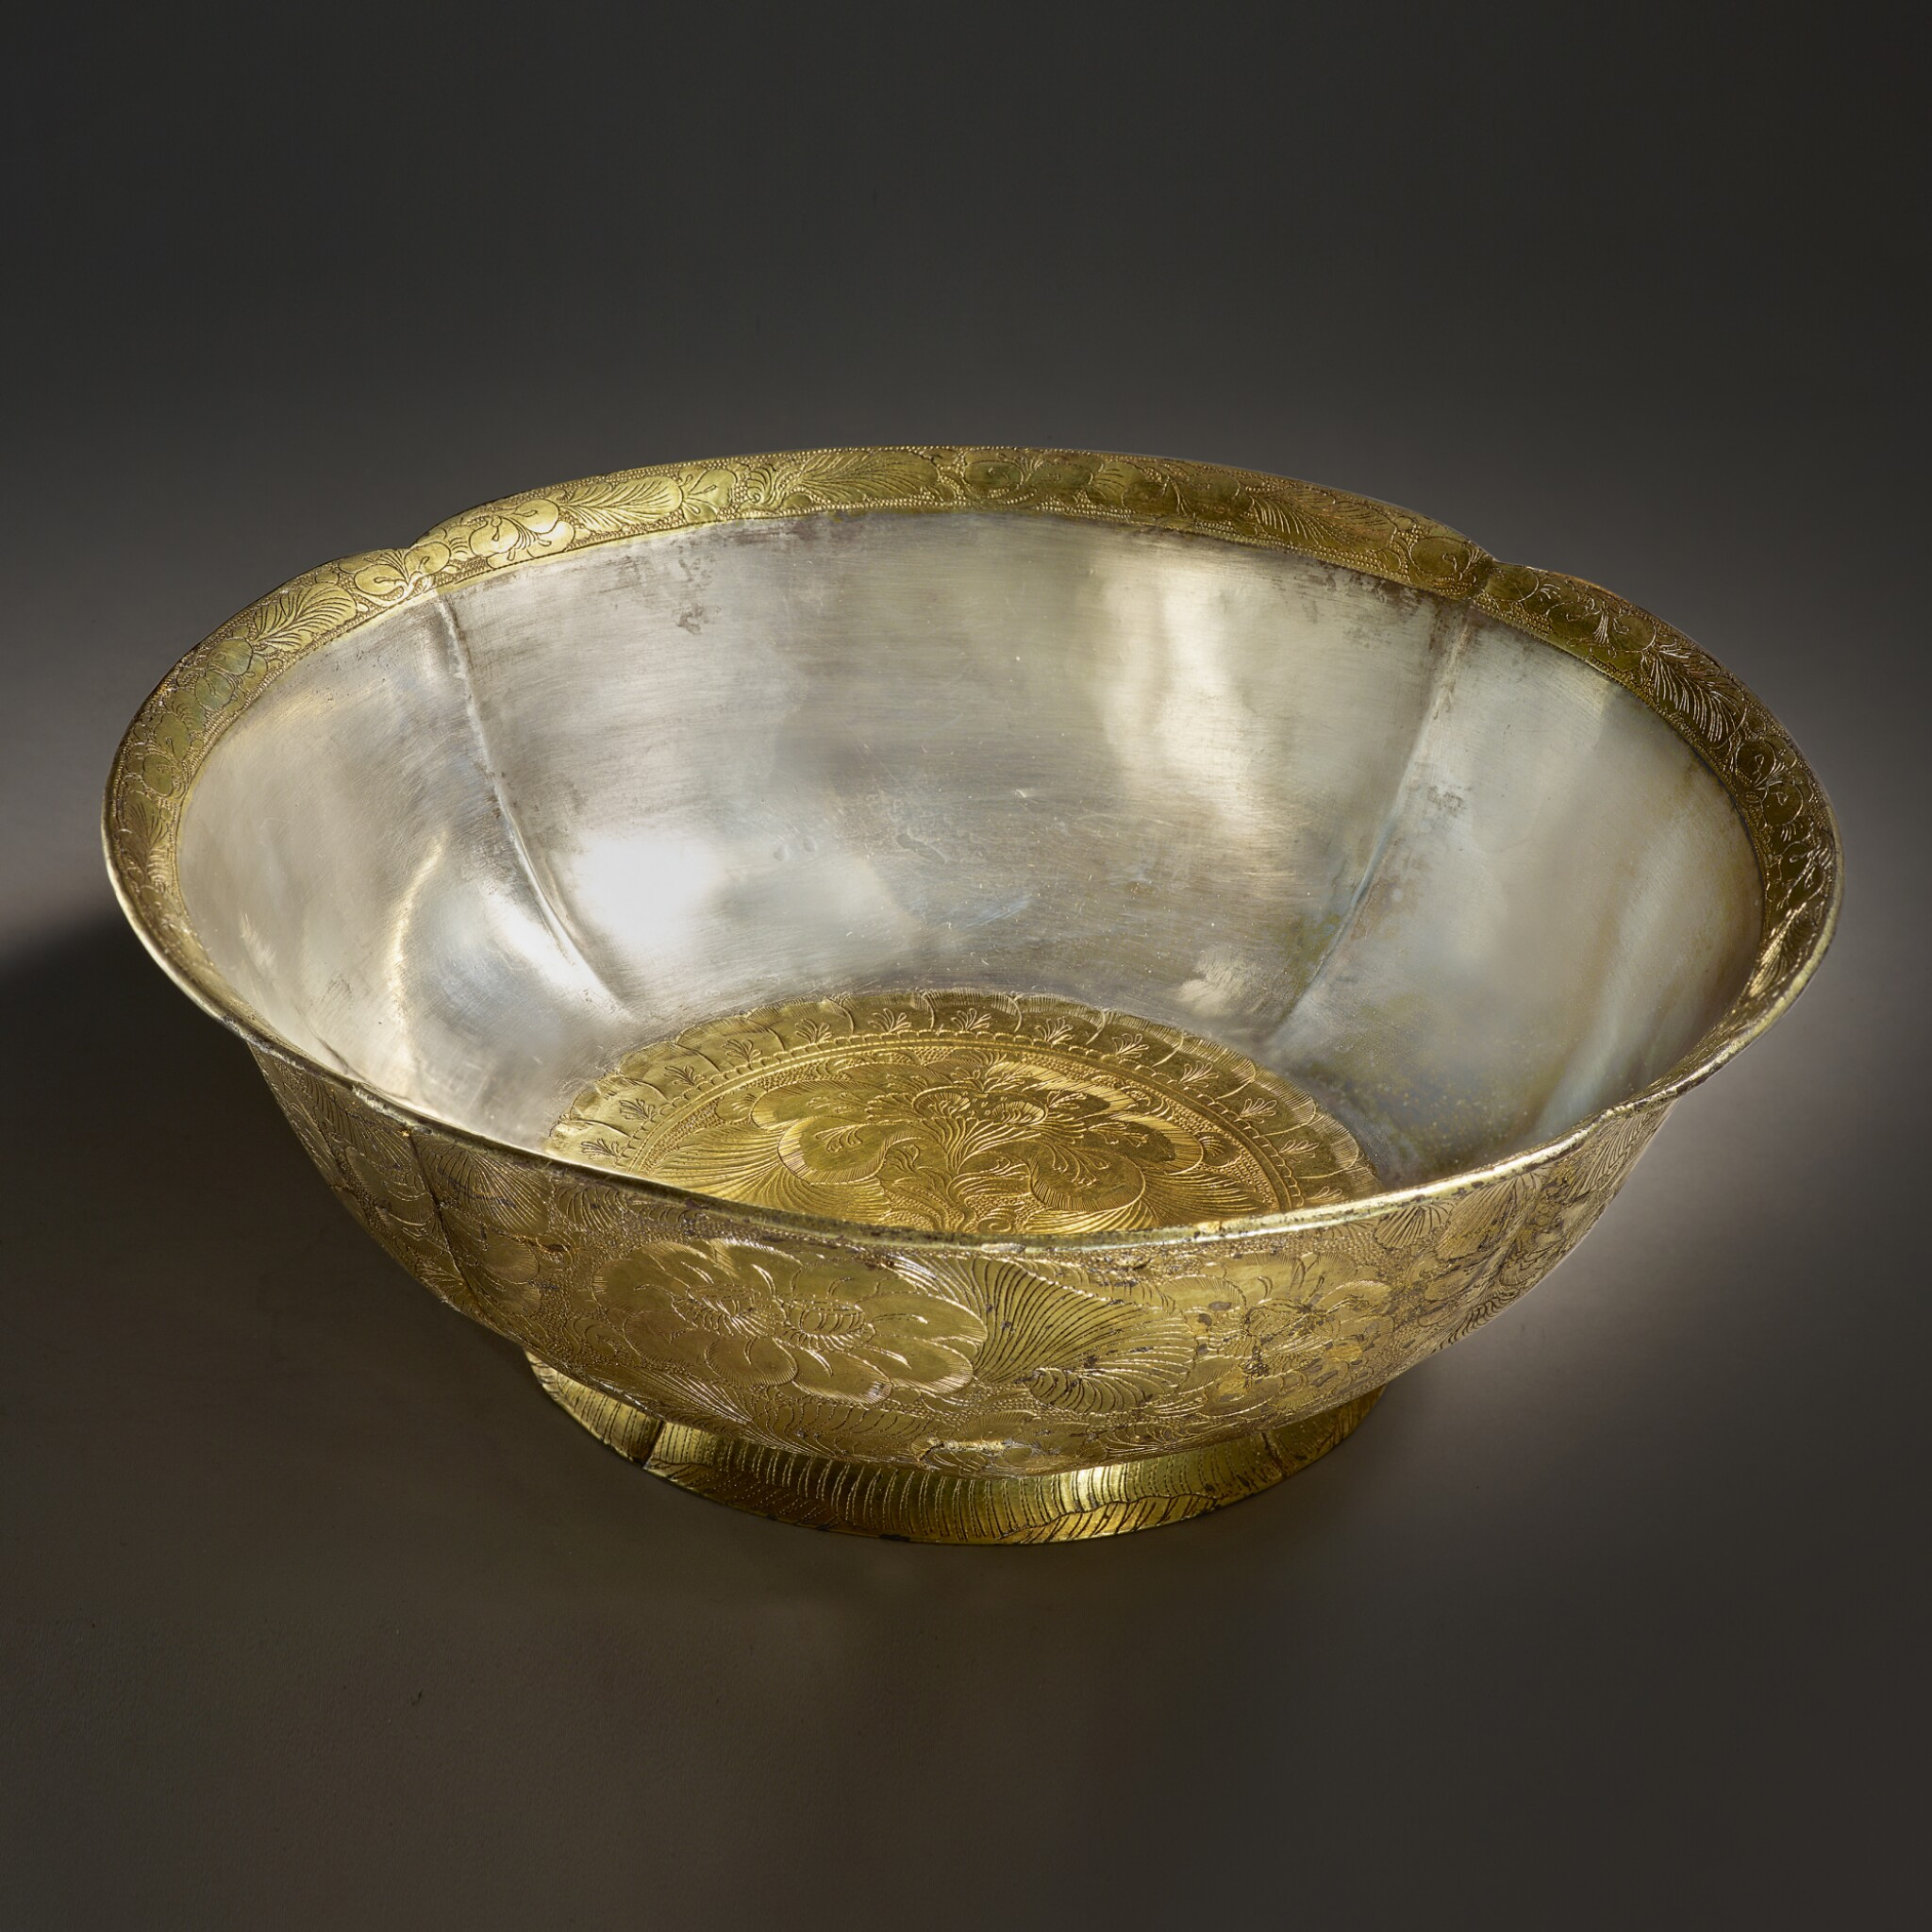 View full screen - View 1 of Lot 202. A superb and important parcel-gilt silver 'lotus and pomegranate' bowl, Tang dynasty   唐 銀局部鎏金石榴蓮花紋花式大盌.